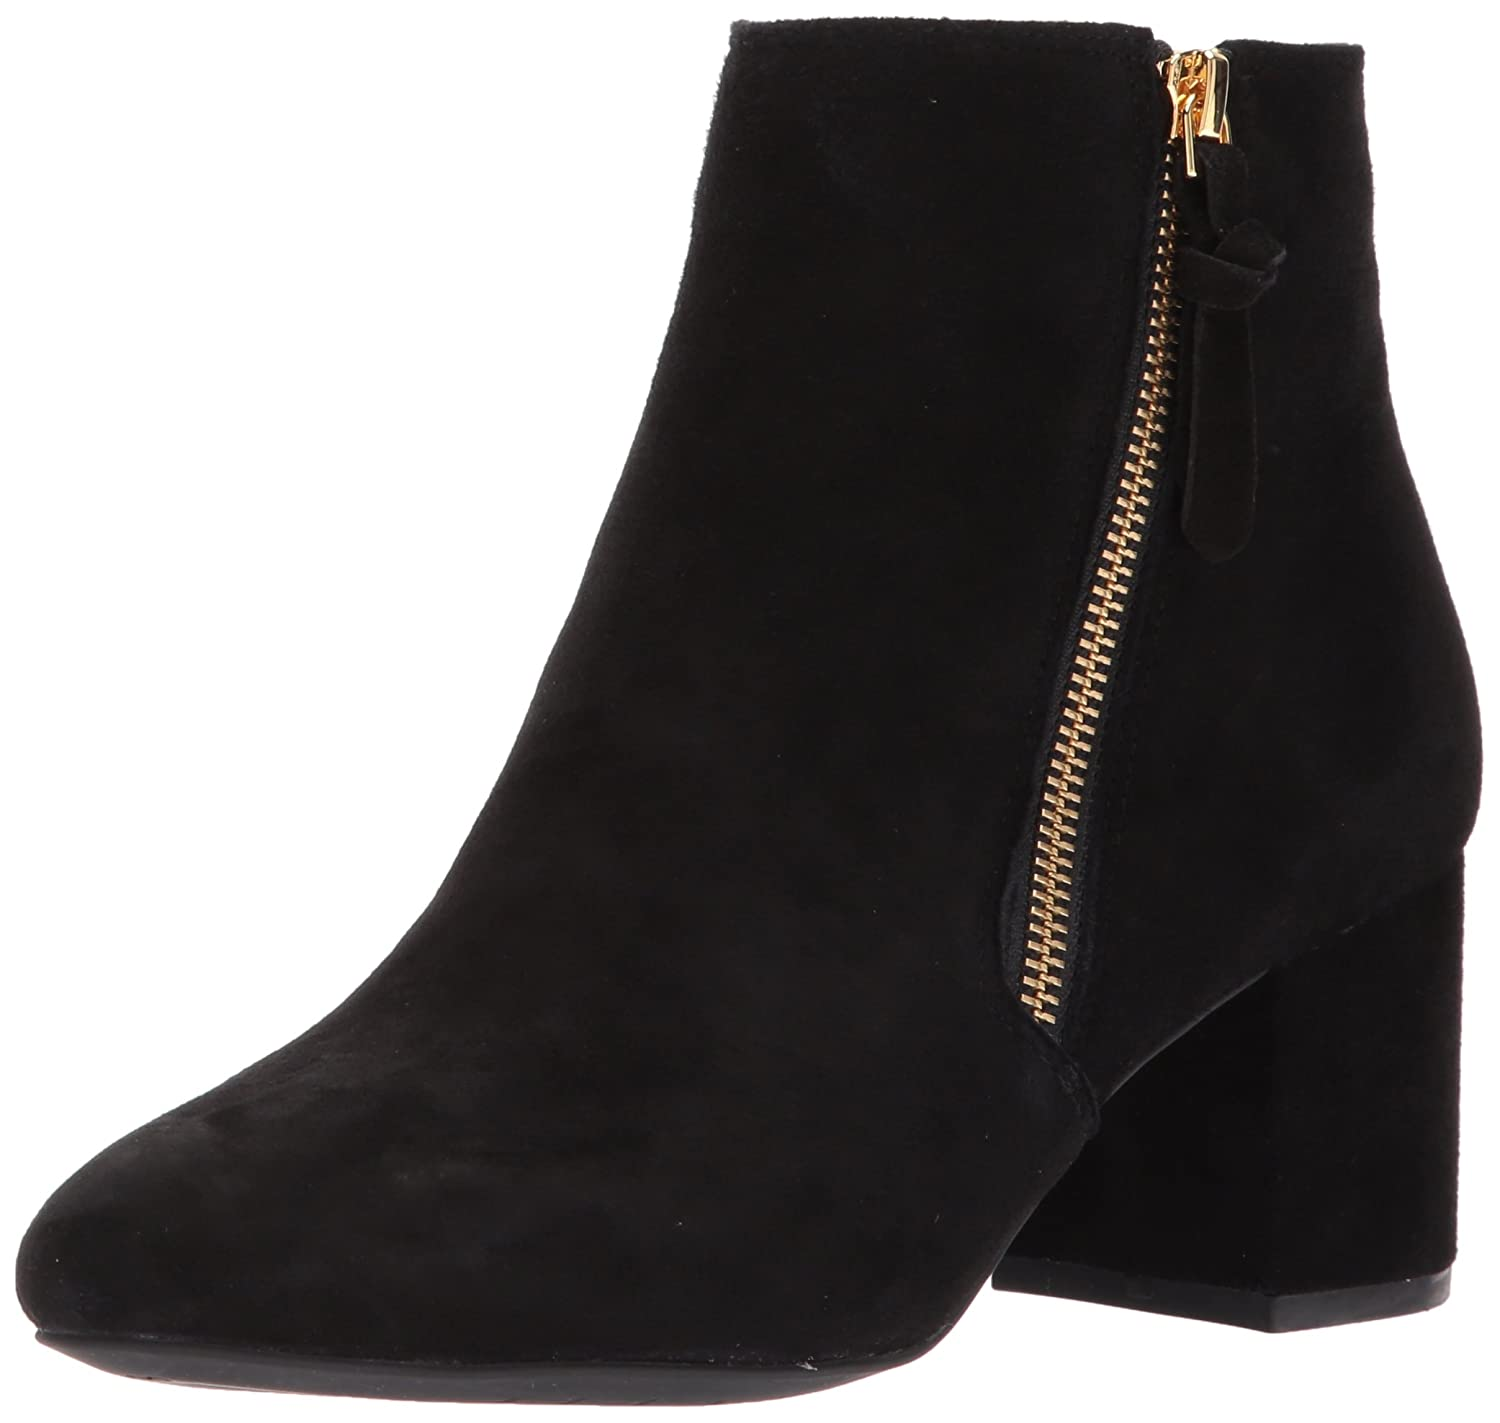 Cole Haan Women's Saylor Grand Bootie II Ankle Boot B01N283TQP 9 B(M) US|Black Suede